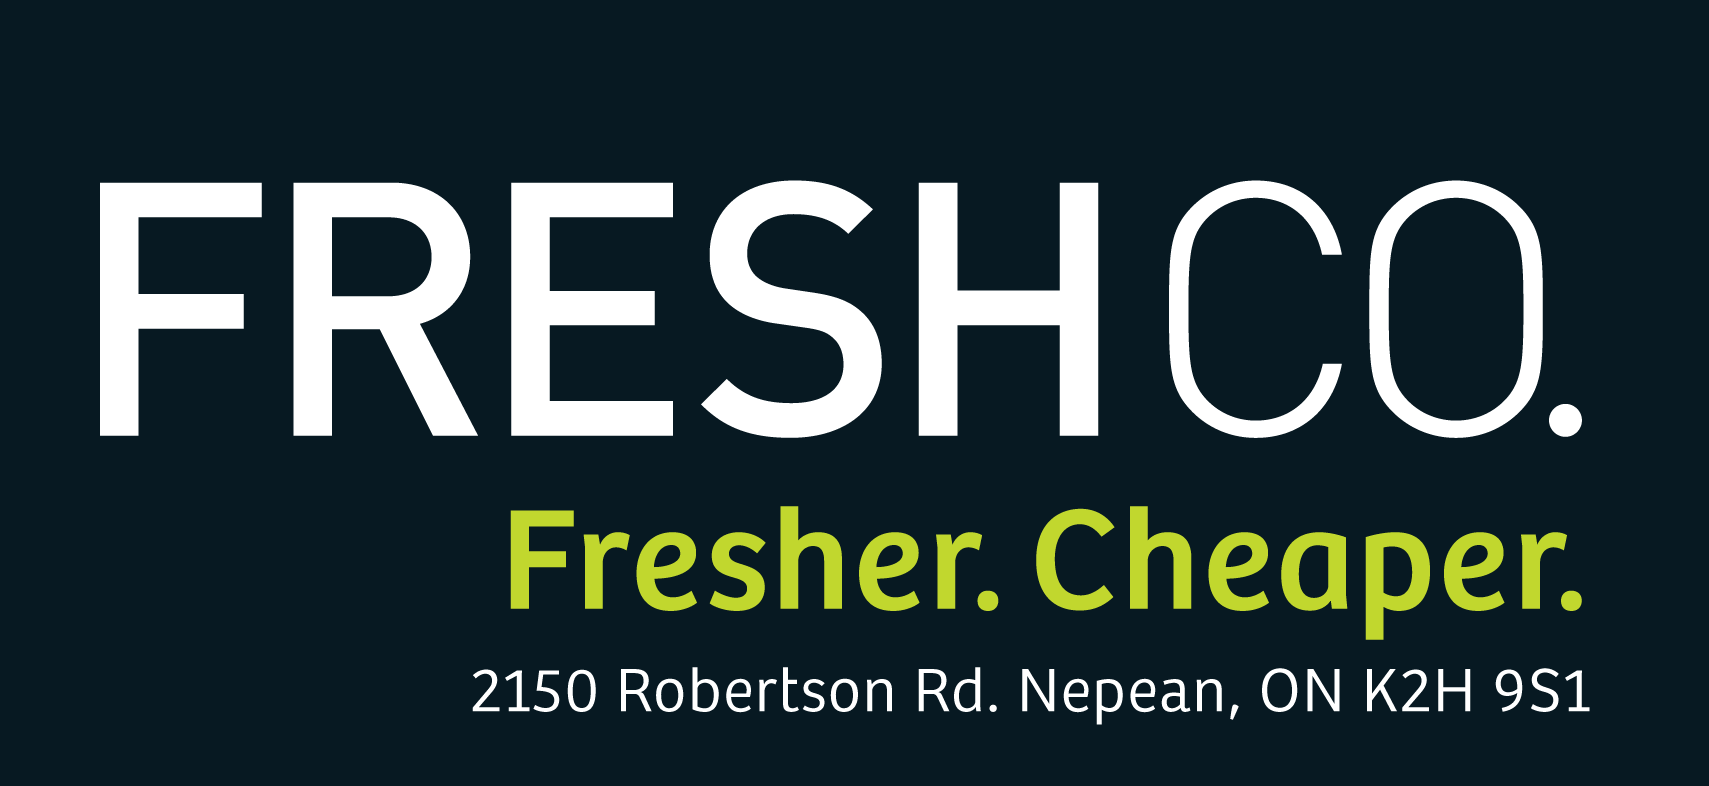 FreshCo. Fresher. Cheaper.